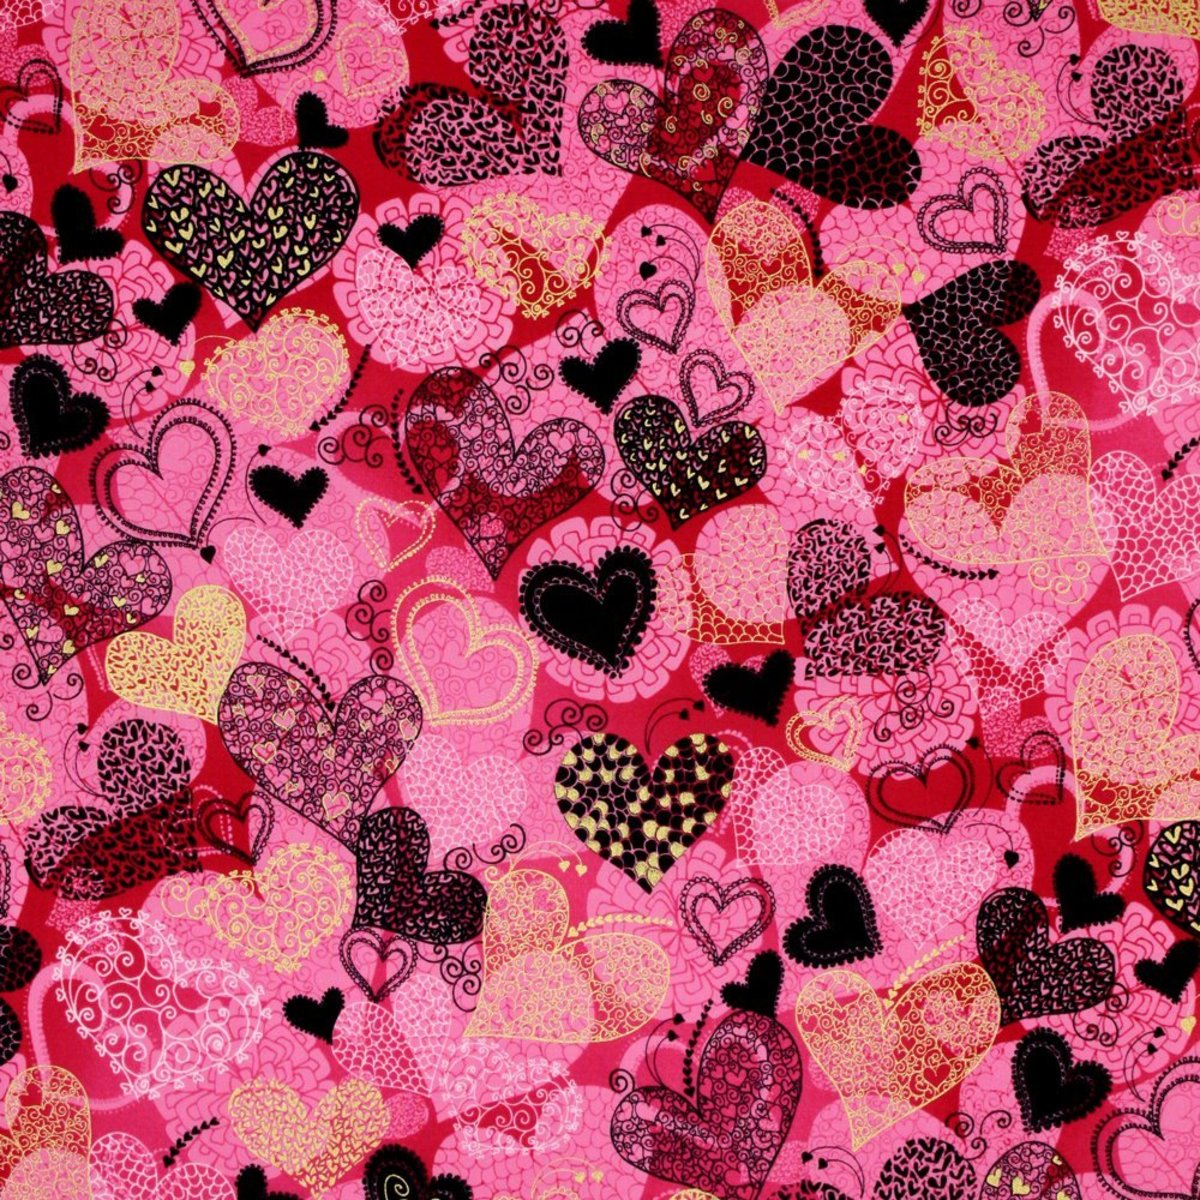 Patchwork Heart Pictures on Fabric